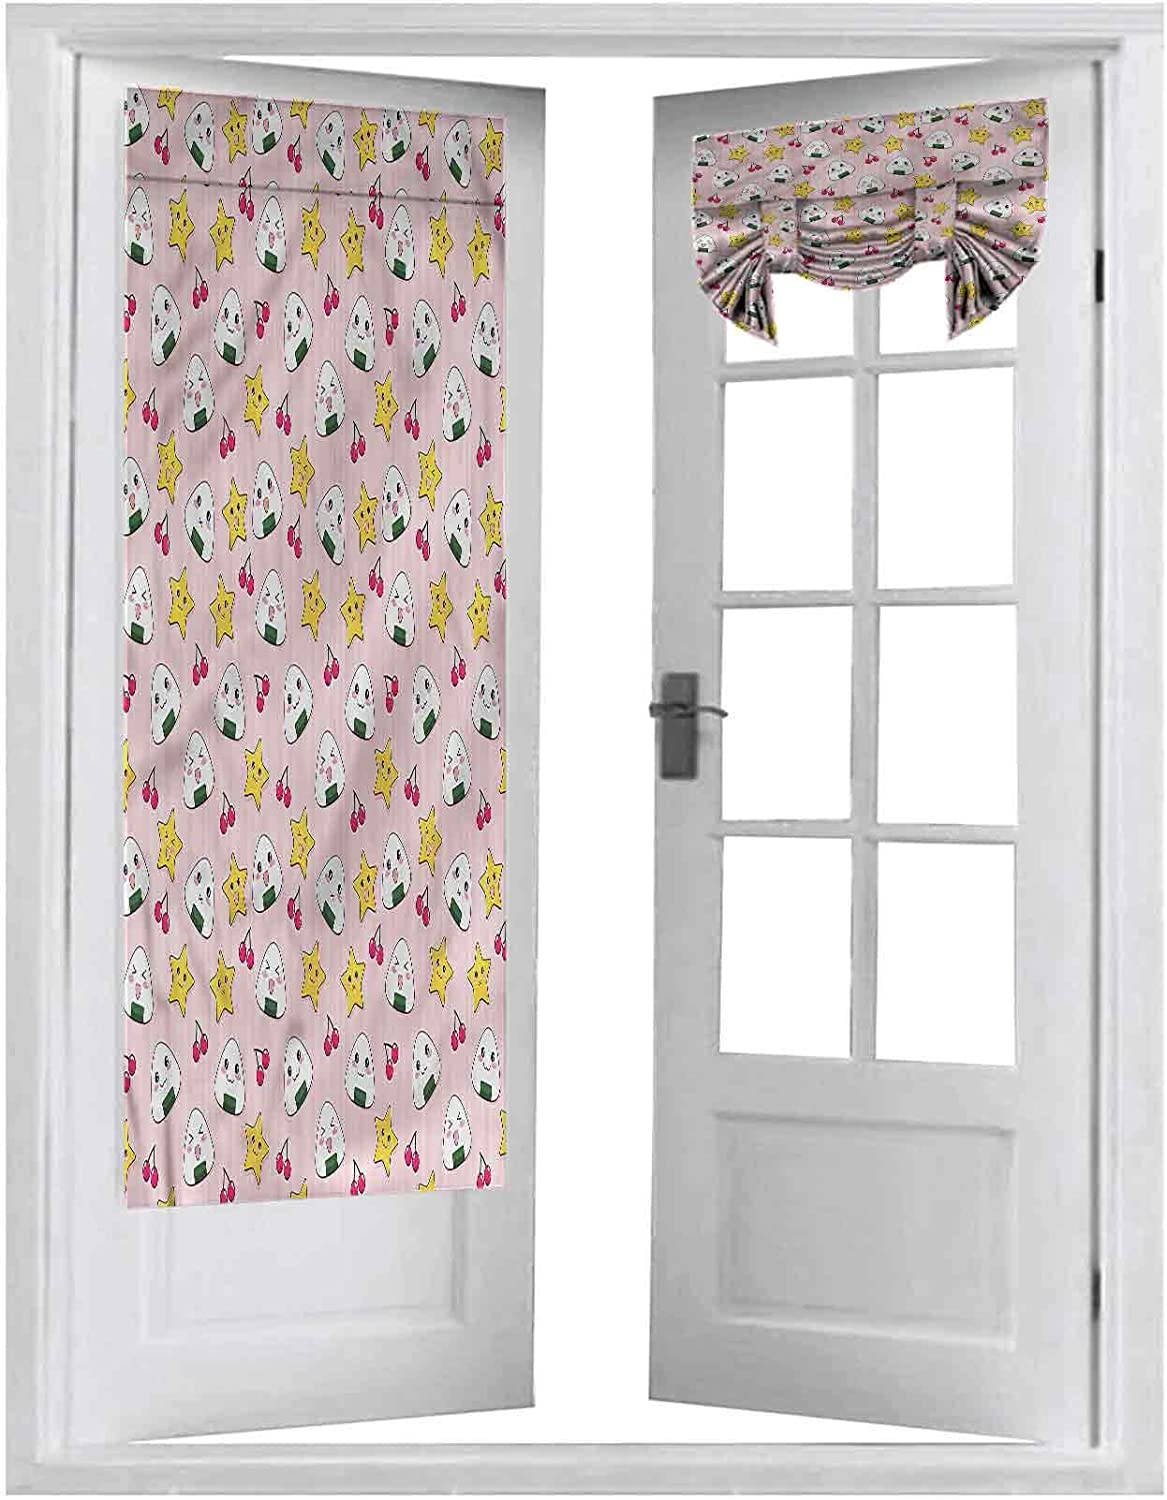 Blackout Curtain for French Doors, Anime,Japan Funny Food Pattern, 2 Panels-26